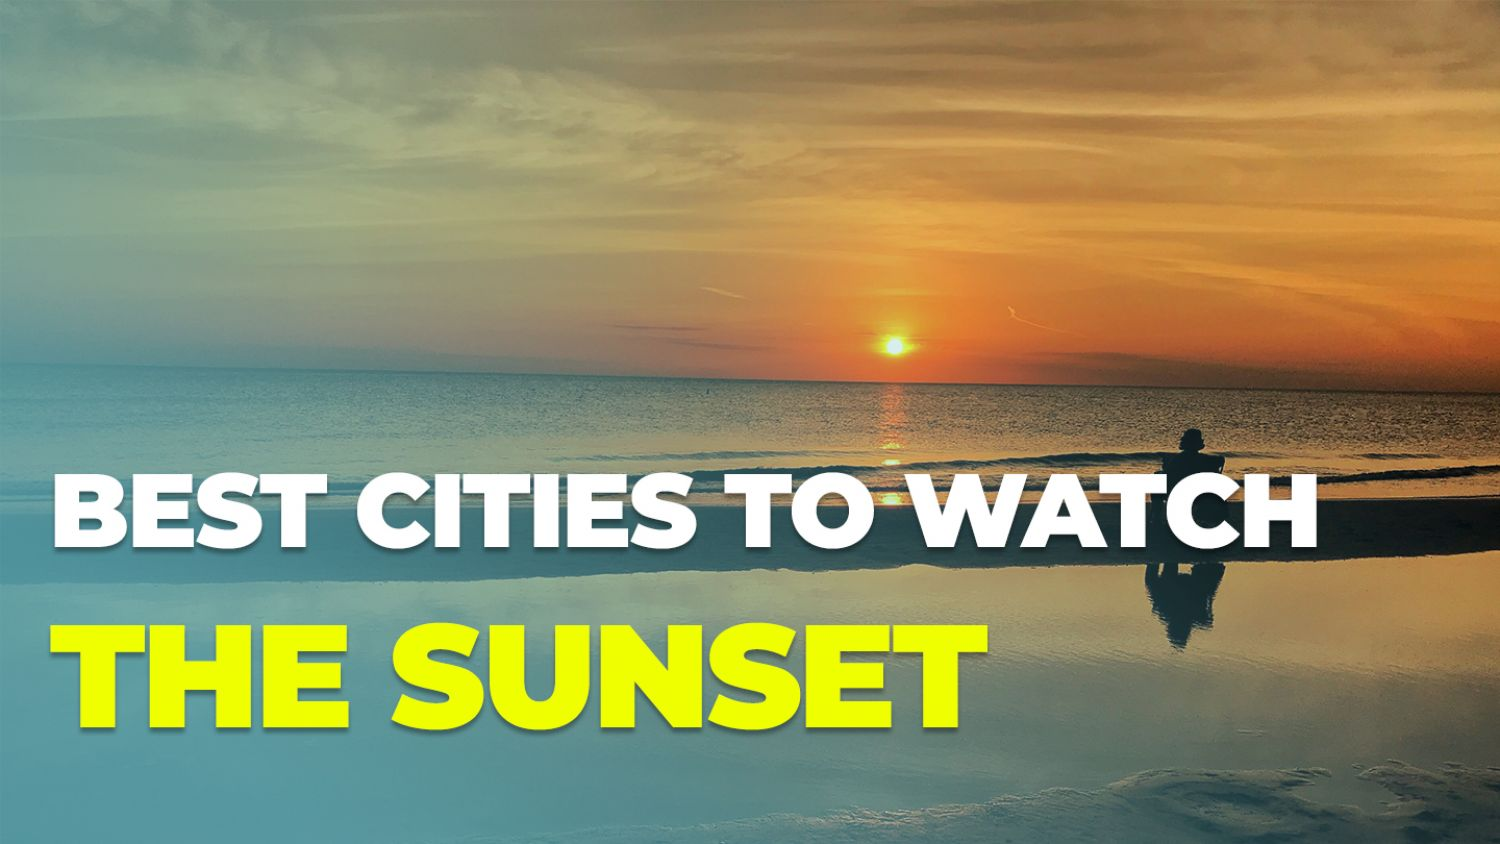 BEST CITIES TO WATCH THE SUNSET